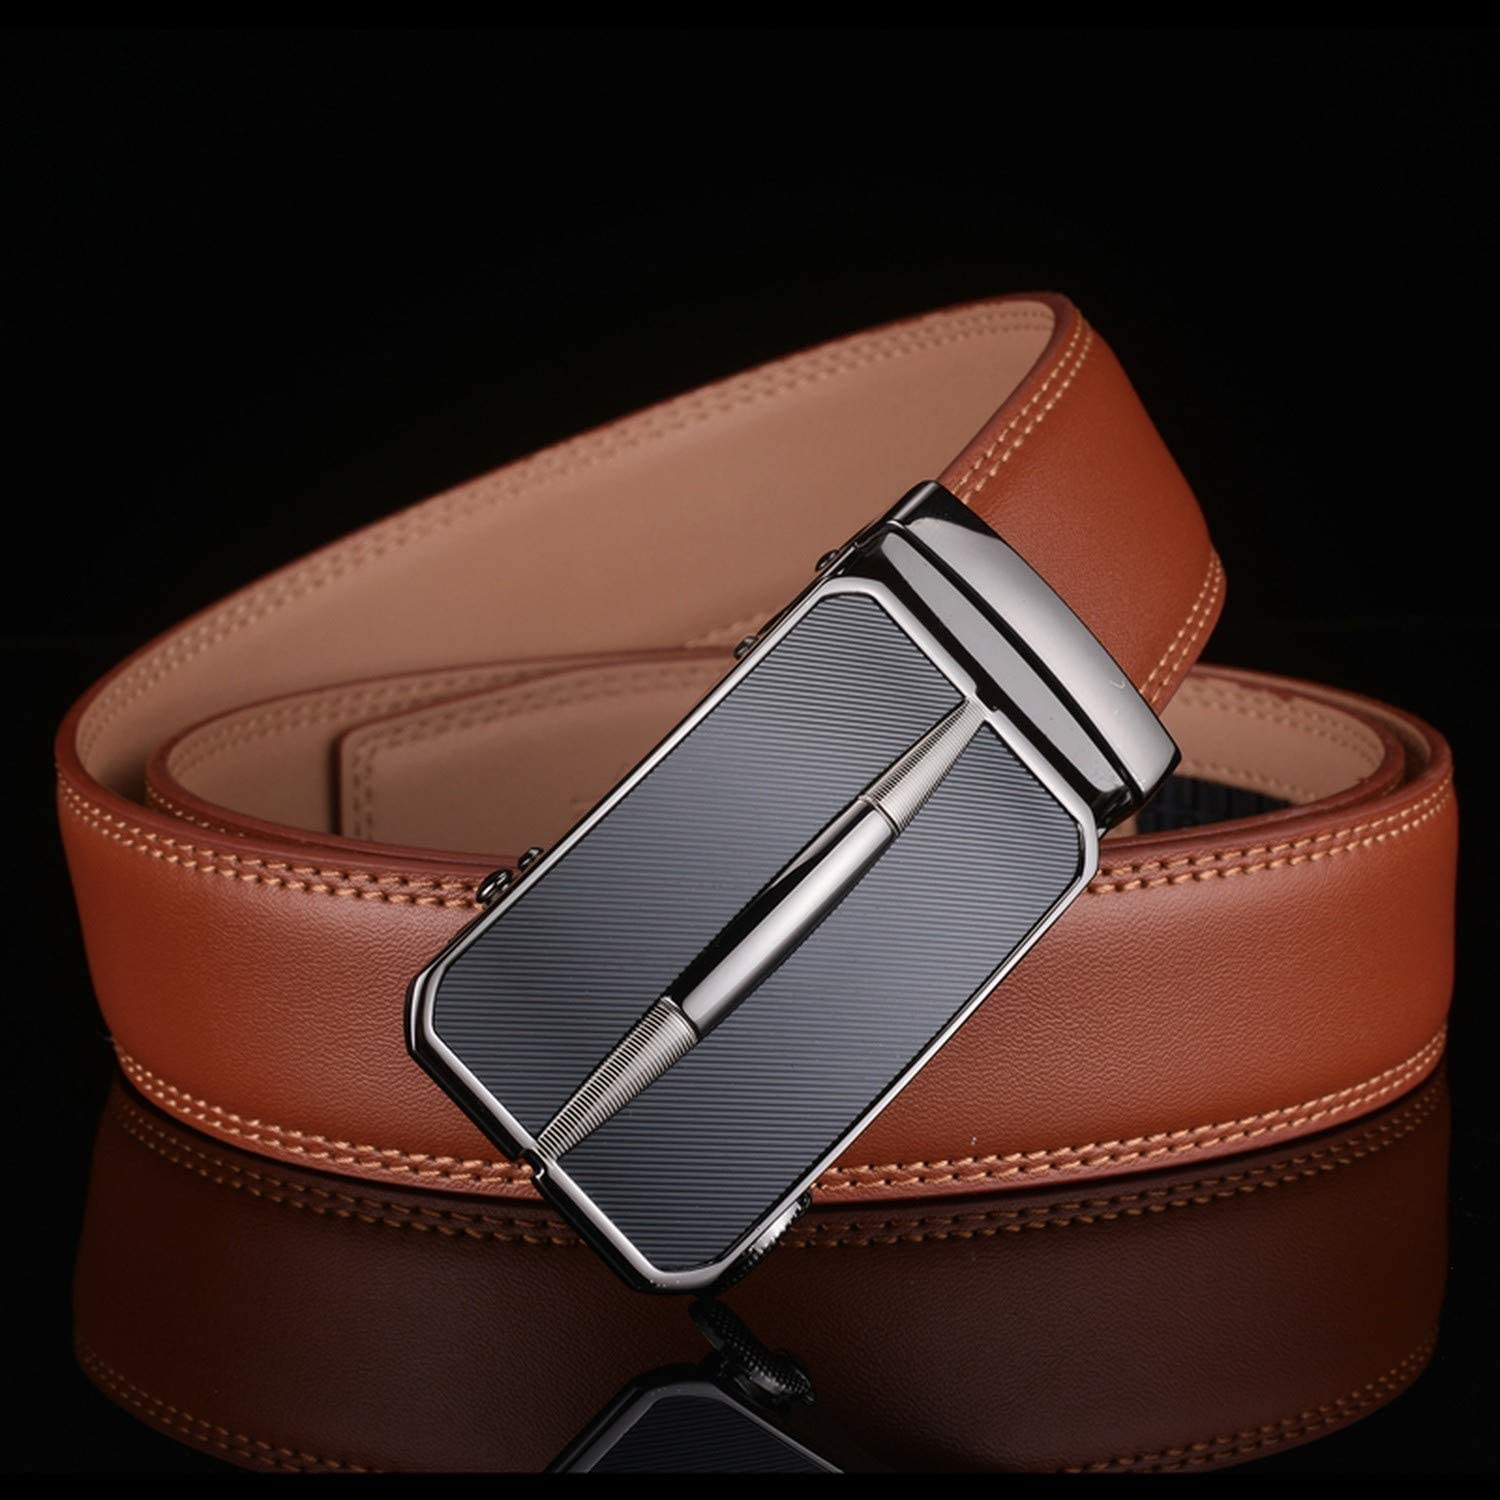 Romantico Men Leather Belt 2018 Automatic Buckle Mens Belt For Jeans Fashion Brand Brown Mens Belts Luxury Genuine Leather G43,Chocolate,110cm